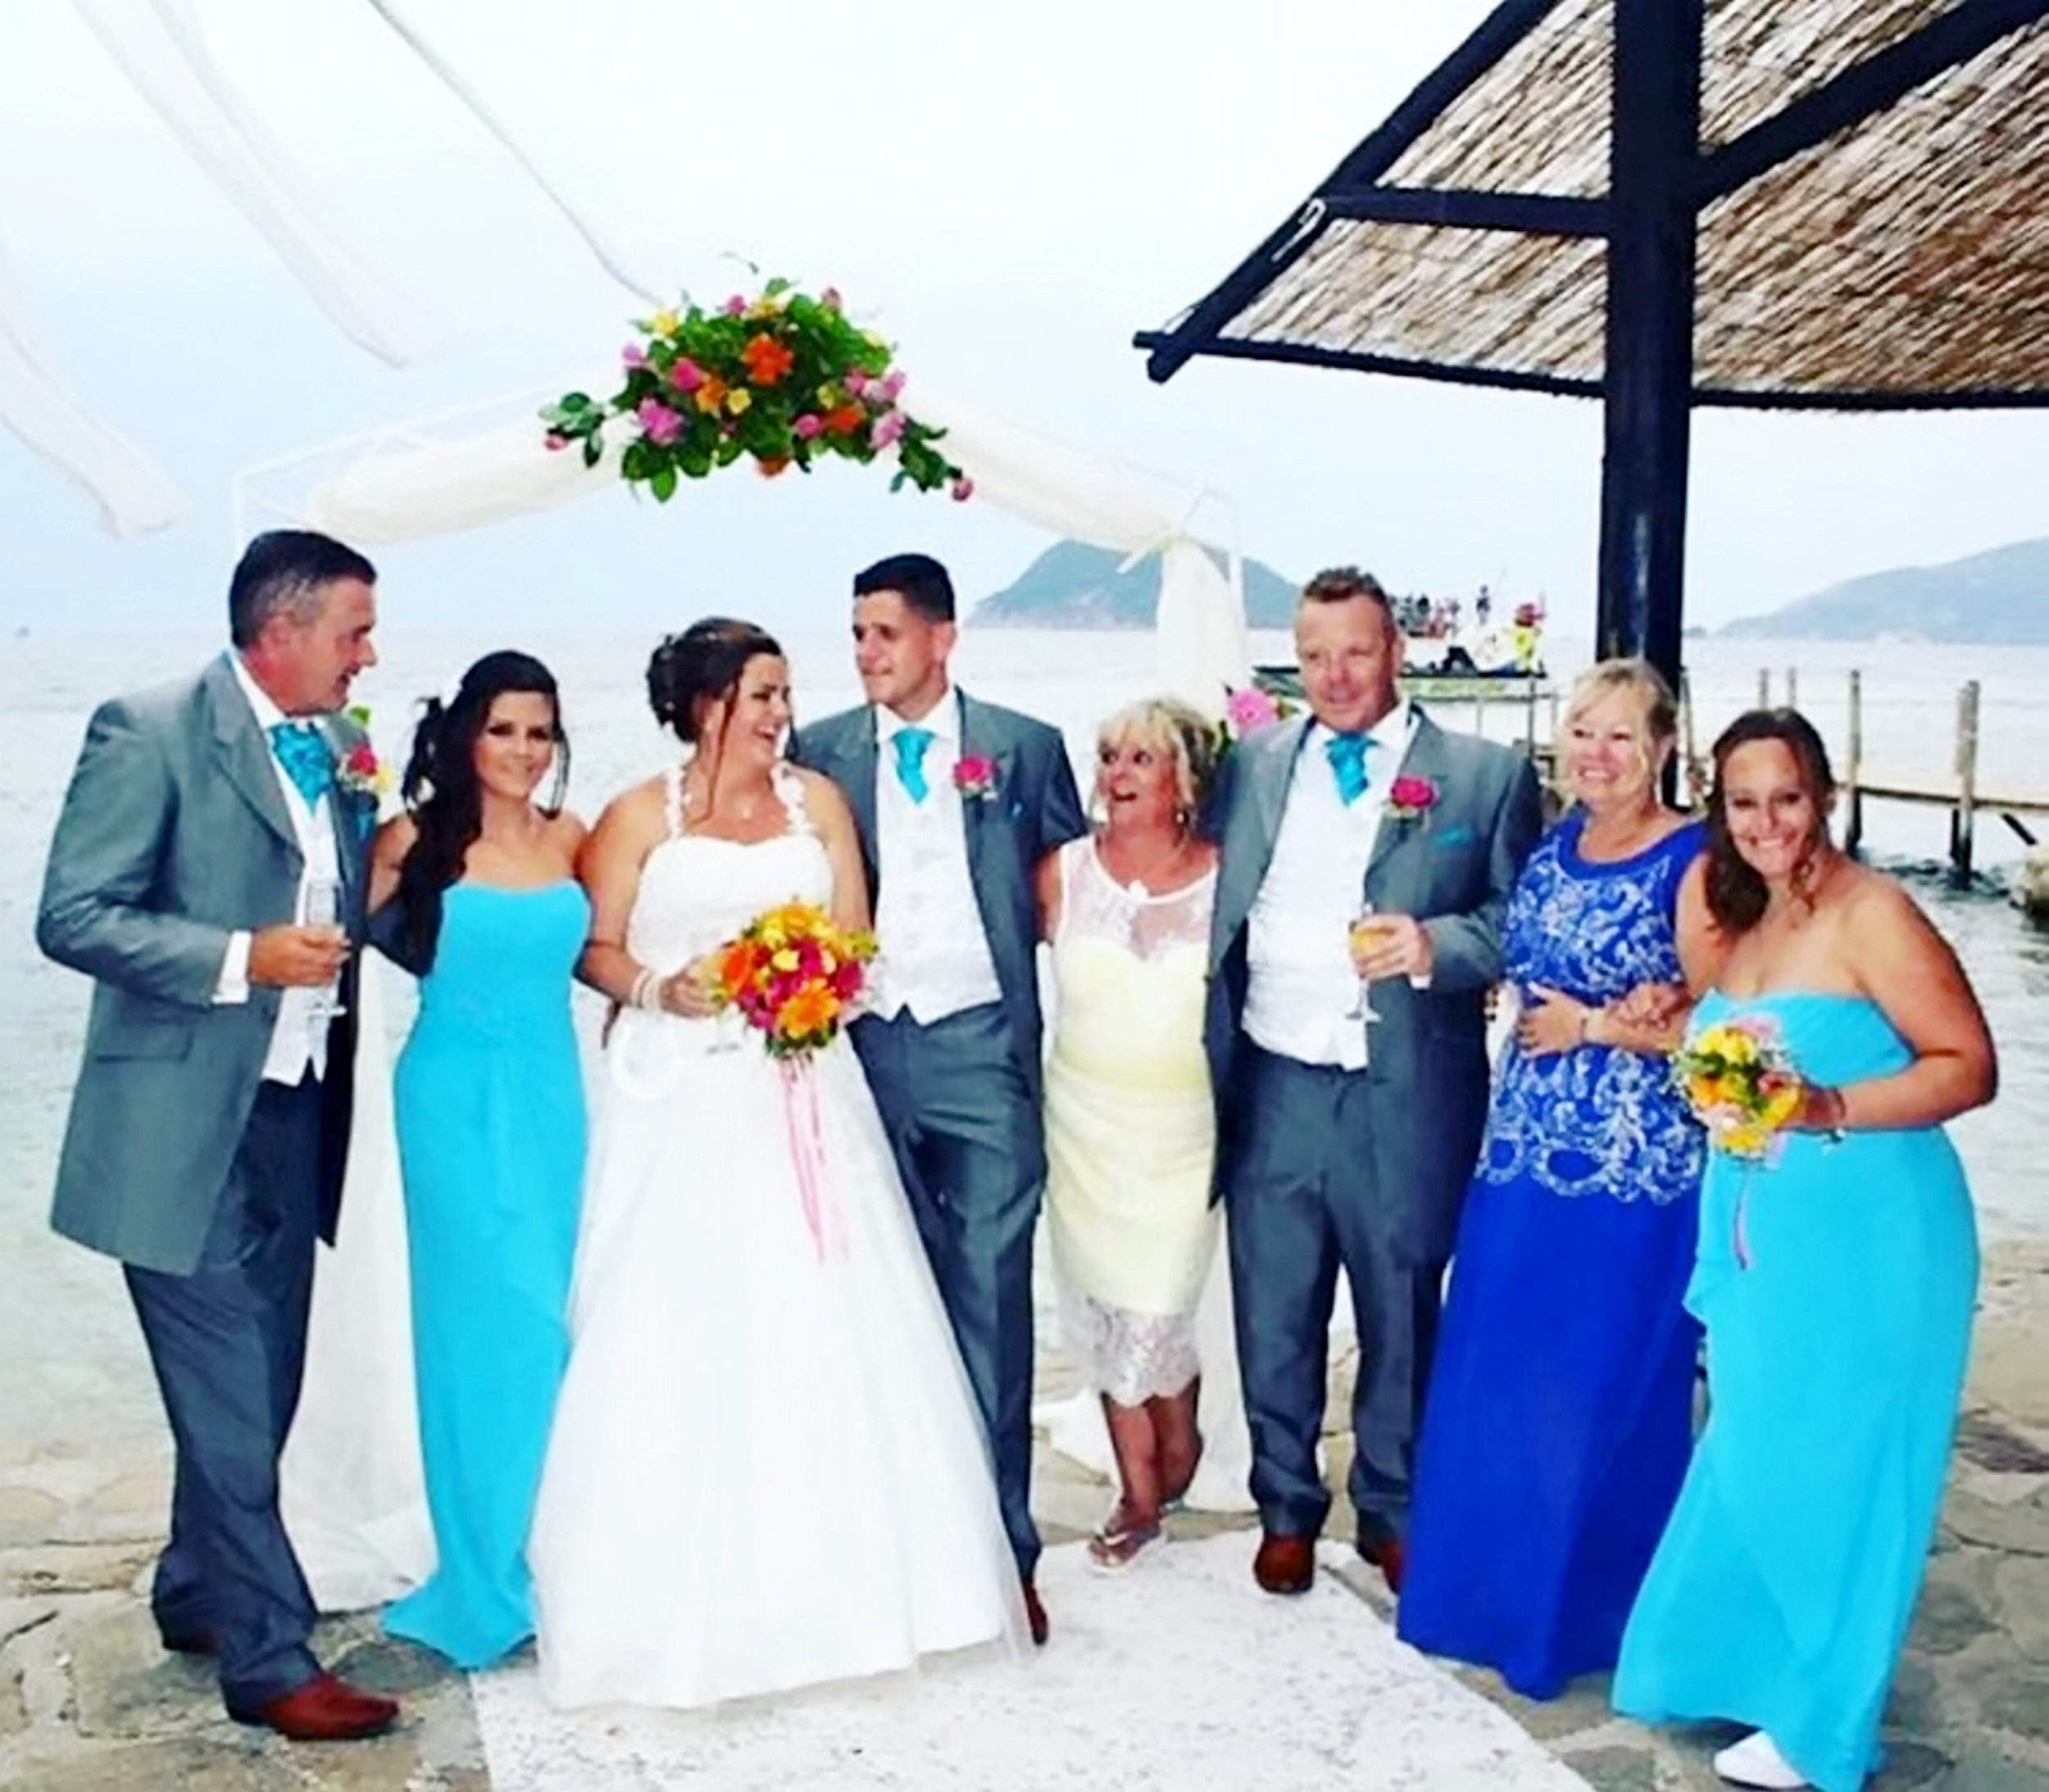 Danielle, 30, and her new husband Mark Woollaston, 38, with their friends and family during their wedding ceremony at the Marelen Hotel in Kalamaki on the Greek island of Zante in August last year. See NTI story NTIWEDDING. A couple are among almost 100 Brits suing a Greek hotel after their dream wedding was ruined when they fell ill with severe stomach bugs - caused by people DEFECATING in the swimming pool. Danielle, 30, and Mark Woollaston (corr), 38, have launched legal action against the Marelen Hotel in Kalamaki on Zante. The pair travelled to the Greek island for two weeks to get married and stayed at the three-star resort with 50 friends and family members in August last year. But their wedding celebrations were ruined because of a severe gastric illness outbreak at the hotel during their stay. The bride, groom and the majority of their guests were then diagnosed with Cryptosporidium, a parasite that causes severe symptoms, on their return to the UK. Danielle and Mark, who live in Sutton Coldfield, West Mids., have now instructed expert personal injury lawyers to investigate the outbreak at the Marelen Hotel.